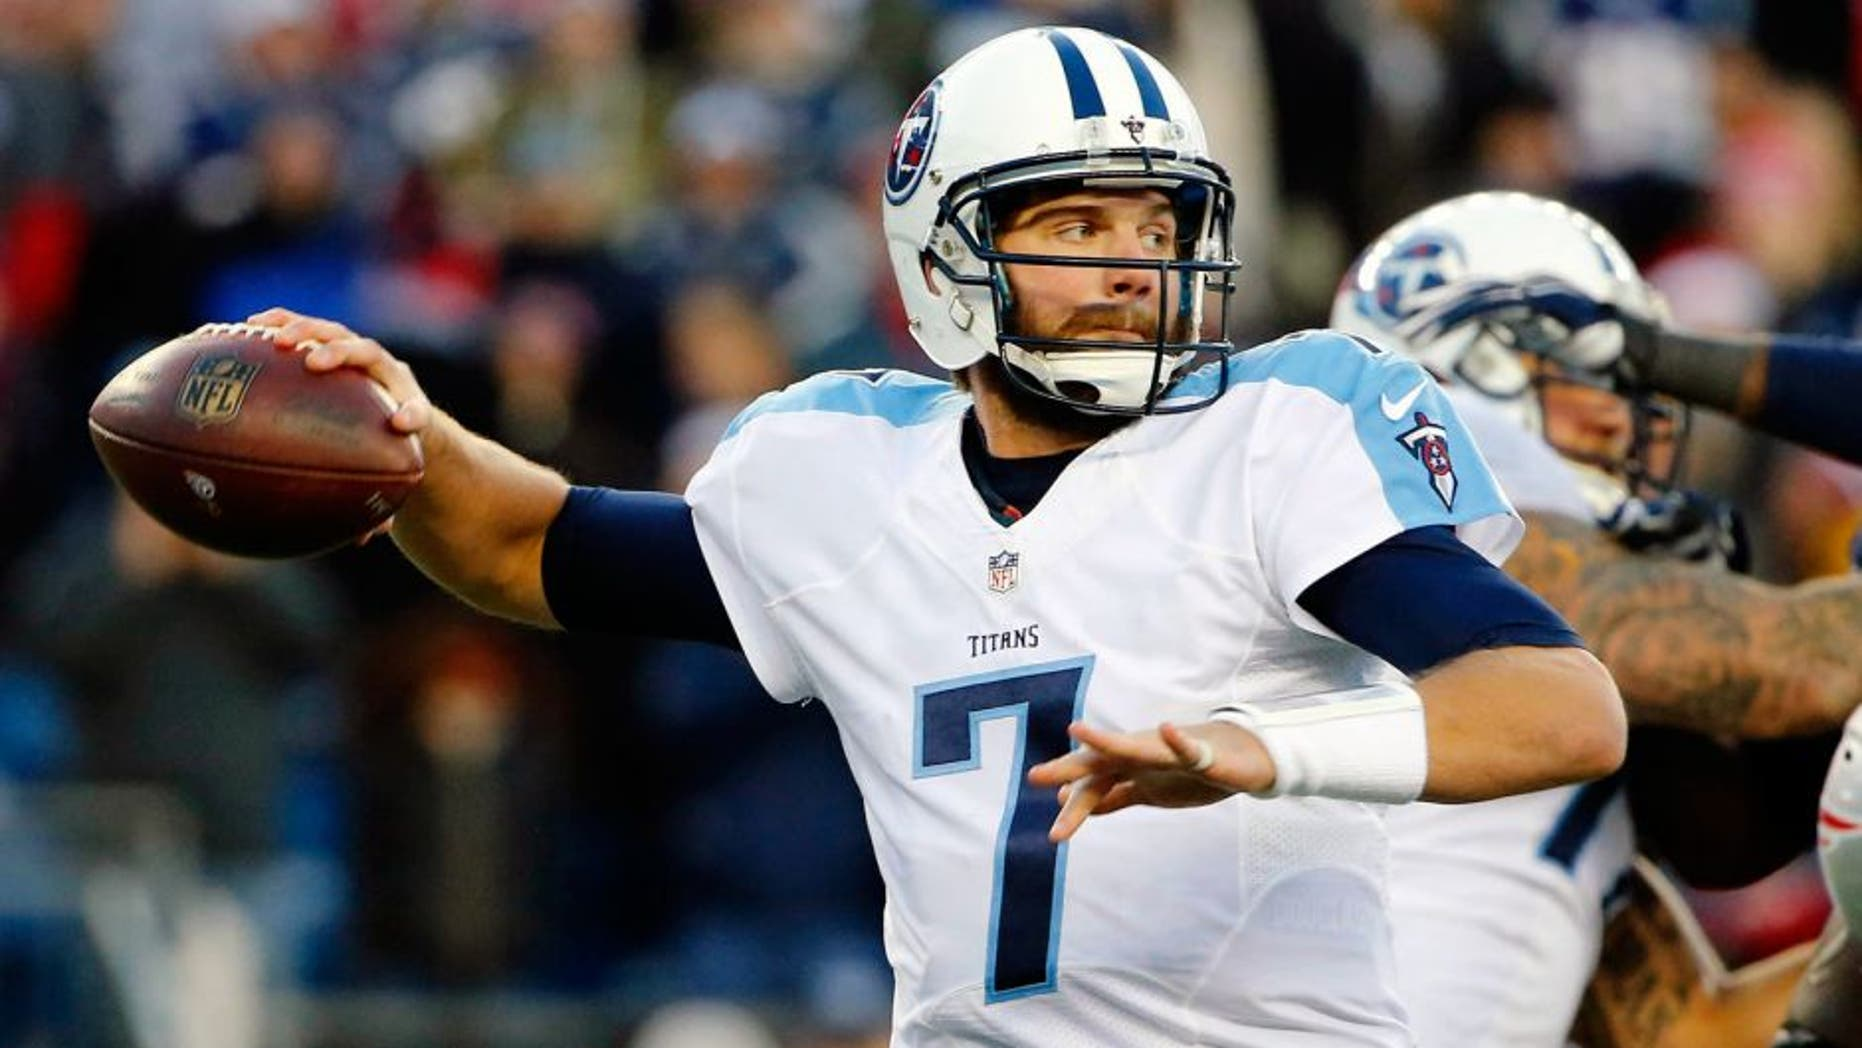 Dec 20, 2015; Foxborough, MA, USA; Tennessee Titans quarterback Zach Mettenberger (7) throws under pressure during the second half of the New England Patriots 33-16 win over the Tennessee Titans at Gillette Stadium. Mandatory Credit: Winslow Townson-USA TODAY Sports